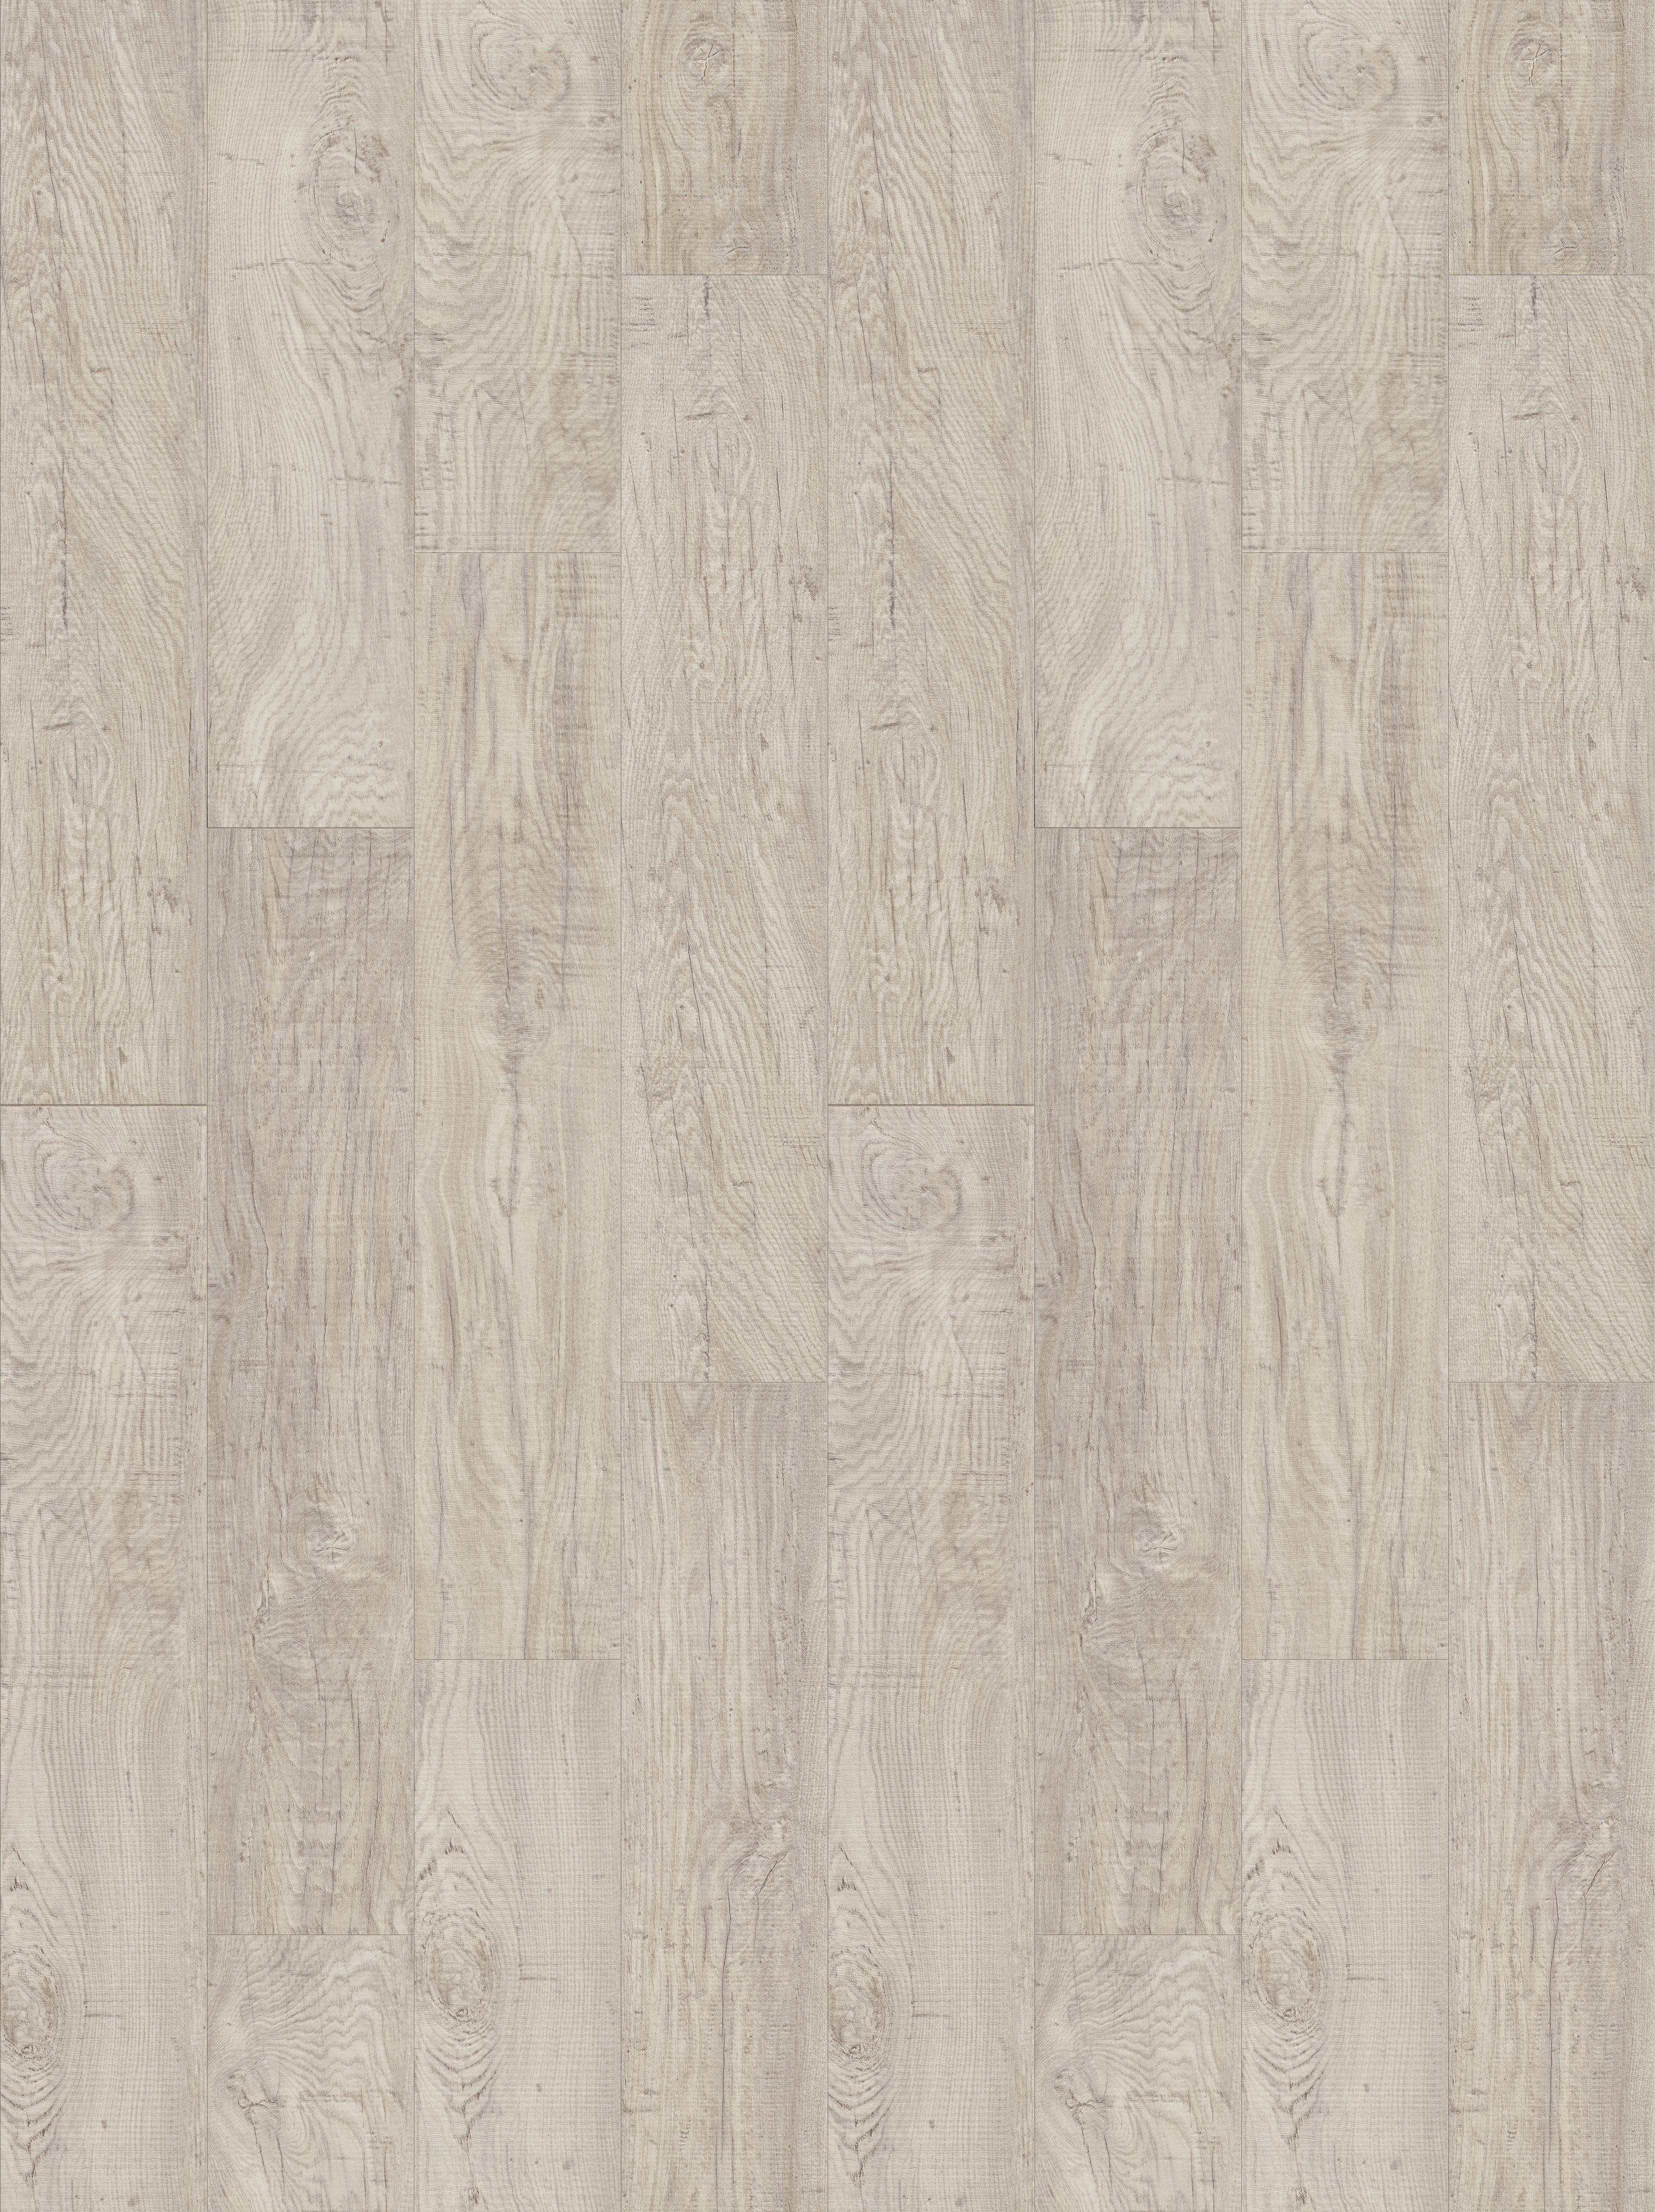 Allura flex 055 wood loose lay tiles forbo flooring systems enlarge cad download dailygadgetfo Images